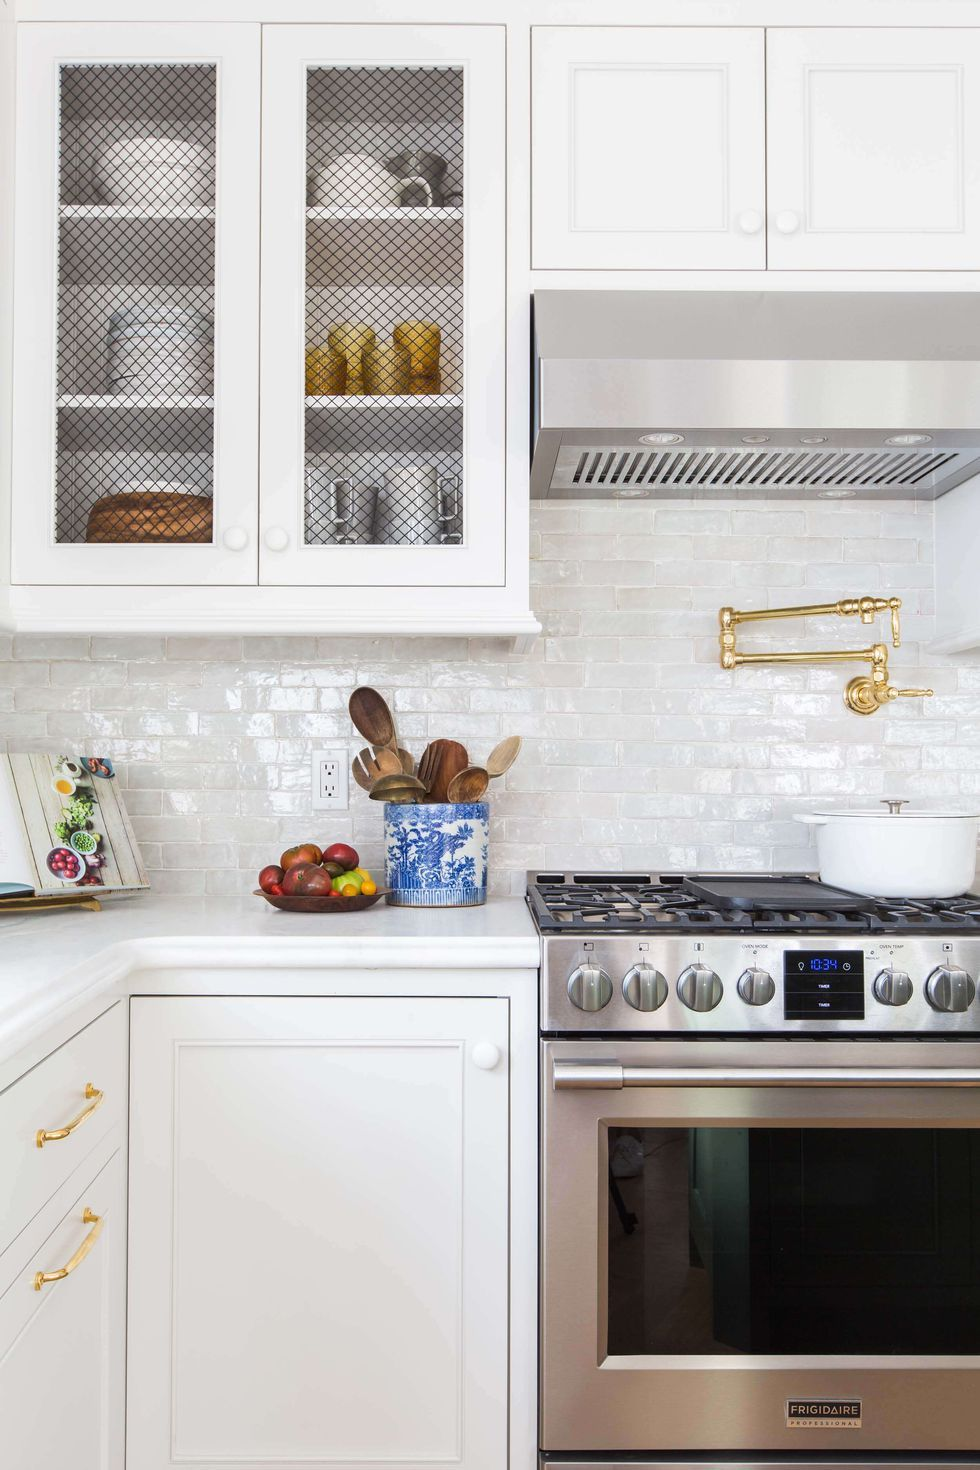 - 7 Popular Kitchen Backsplashes, Ranked From Least To Most